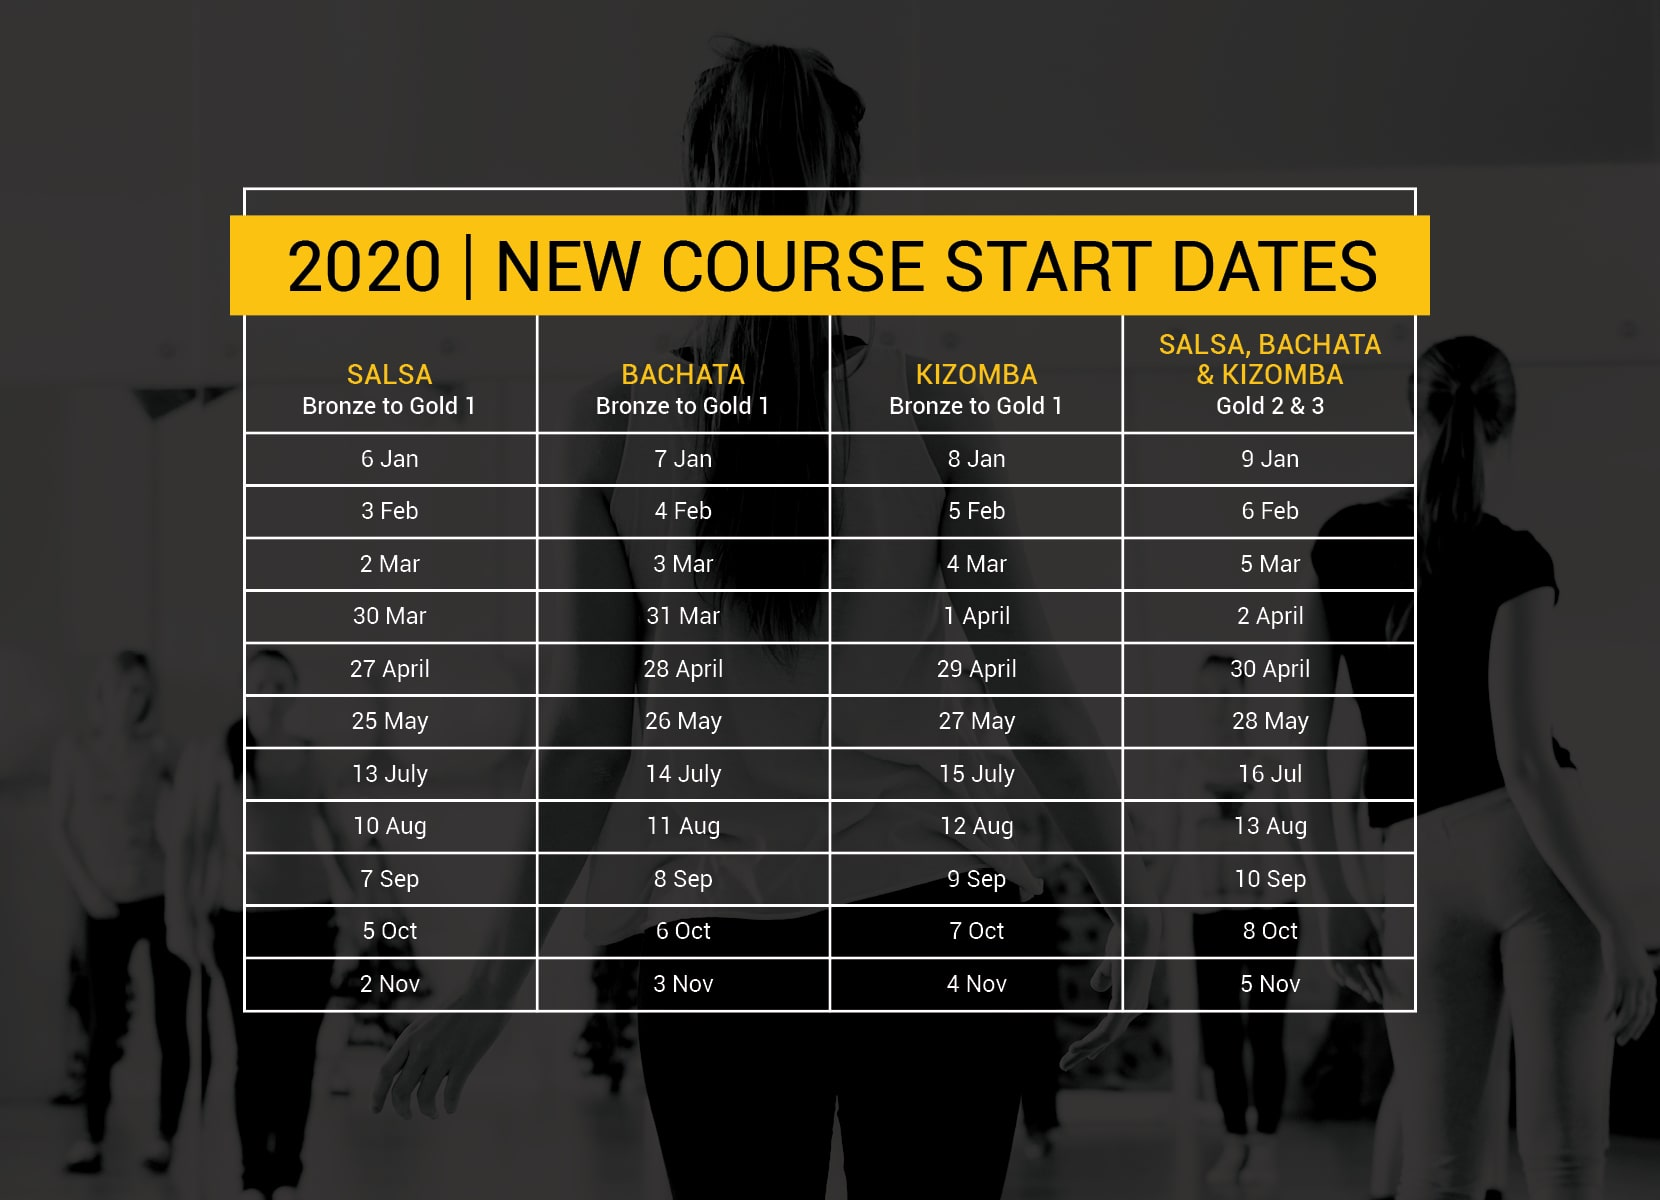 Paradiso_New-Course-Starting-Dates_2020-min